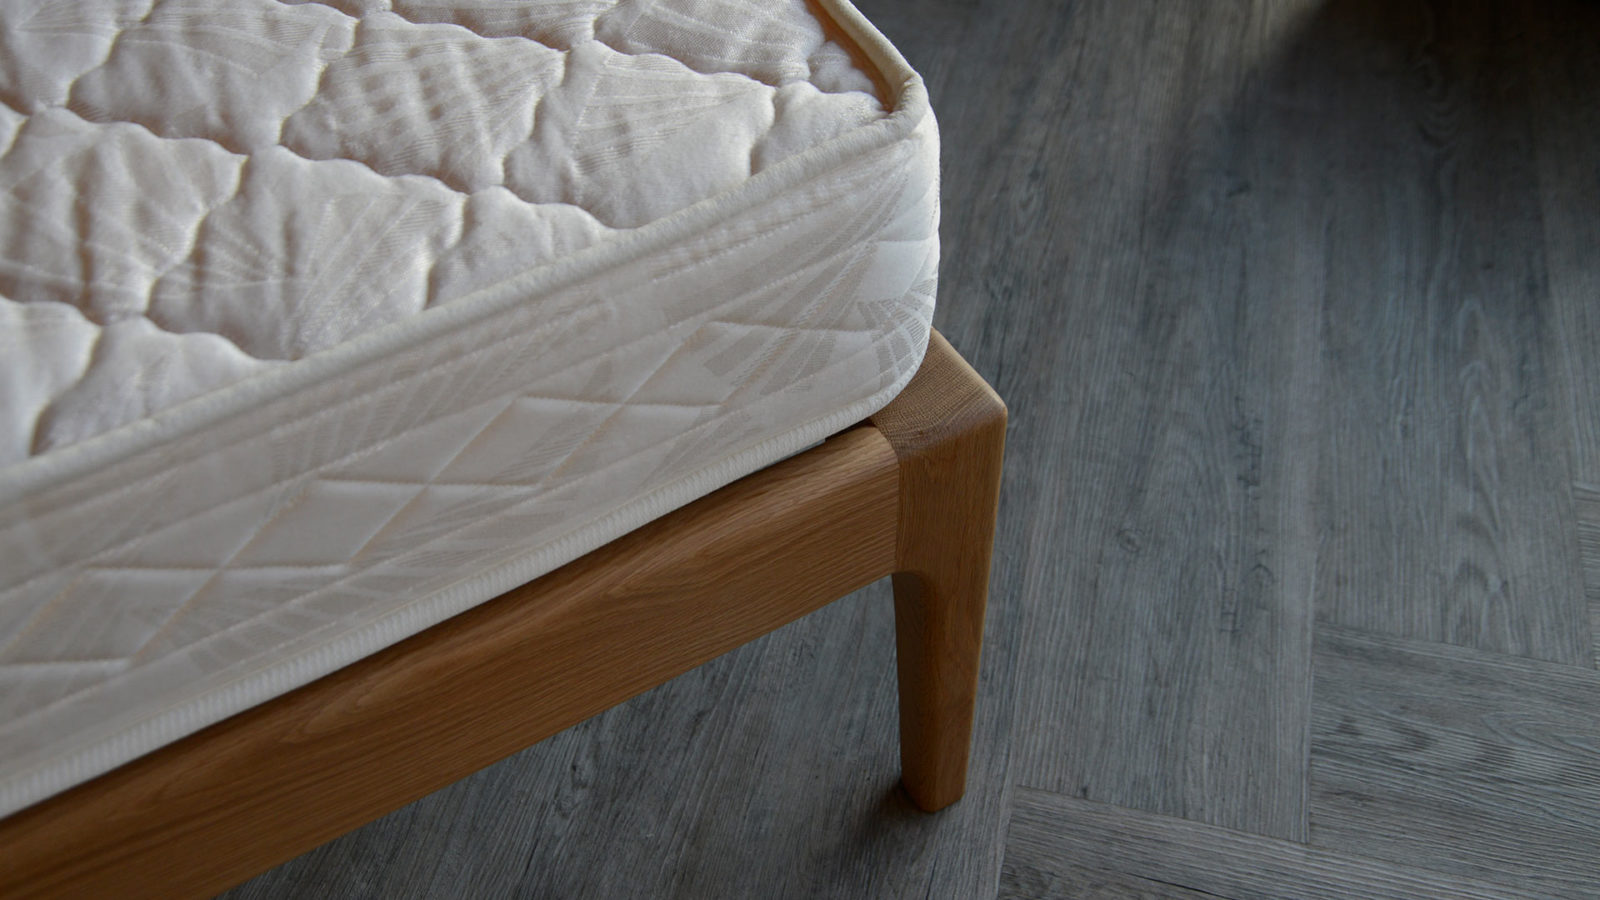 A closer view of the curving solid wood leg of our Camden wooden bed